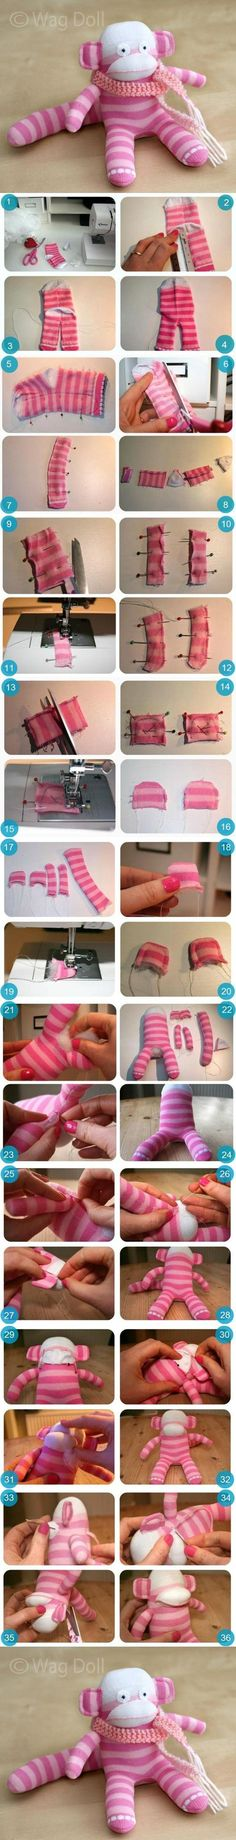 DIY Sock Monkey DIY Projects / UsefulDIY.com